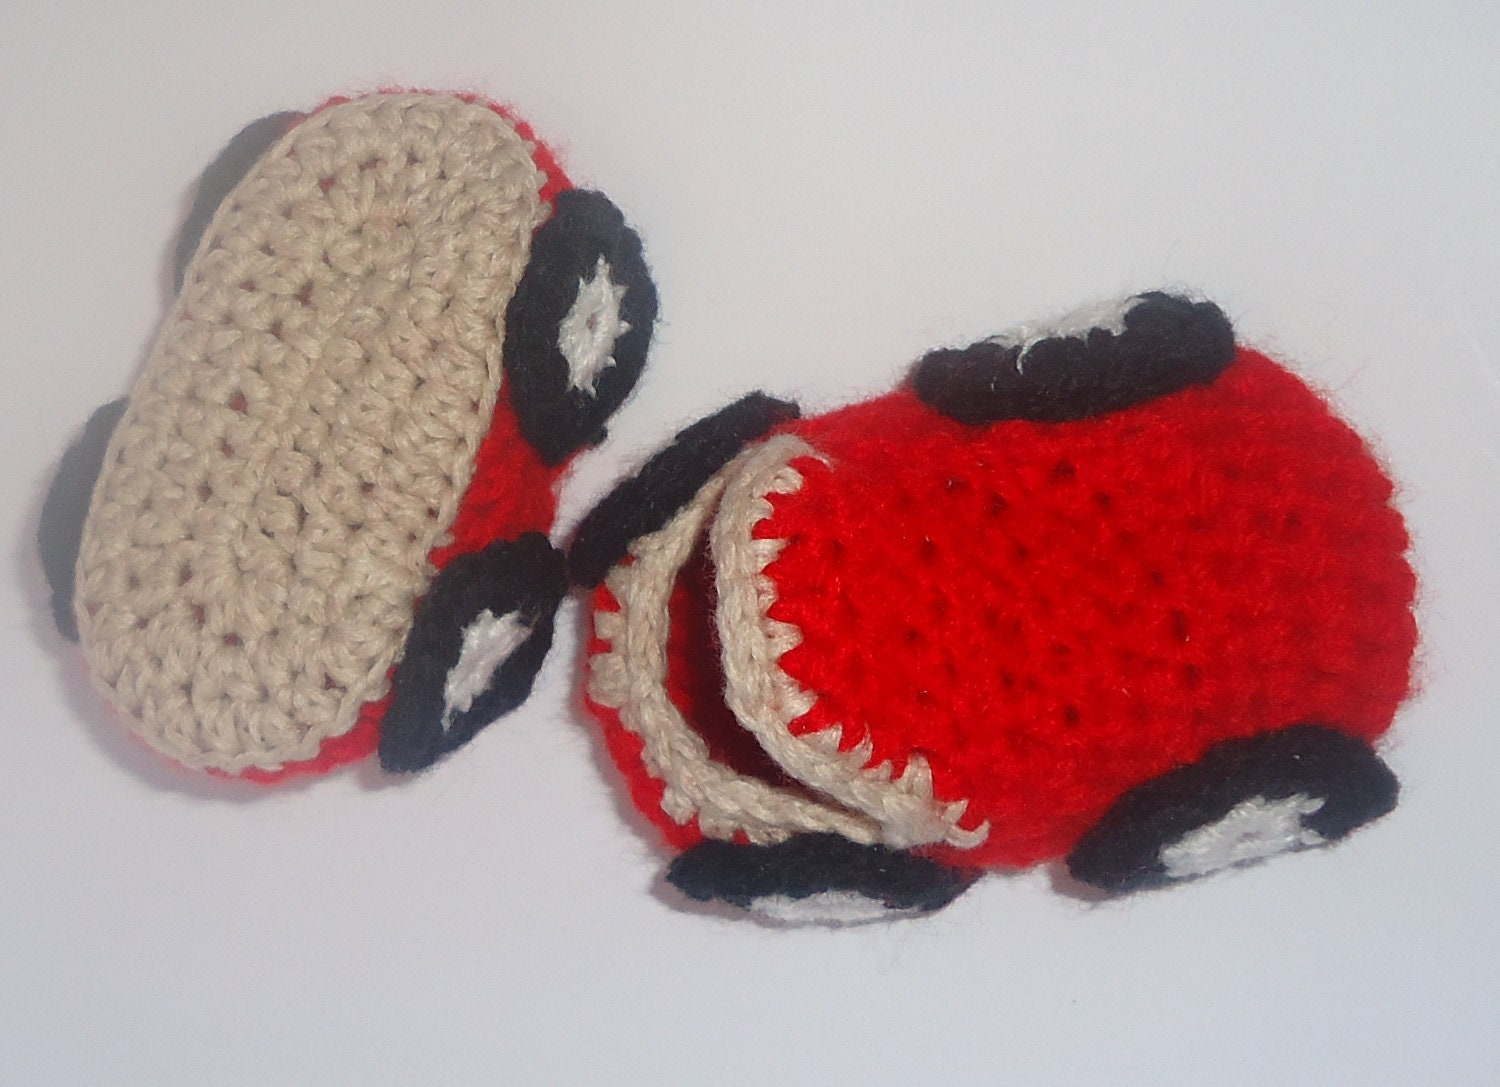 Cute crocheted red car slippers shoes for baby. Crochet baby